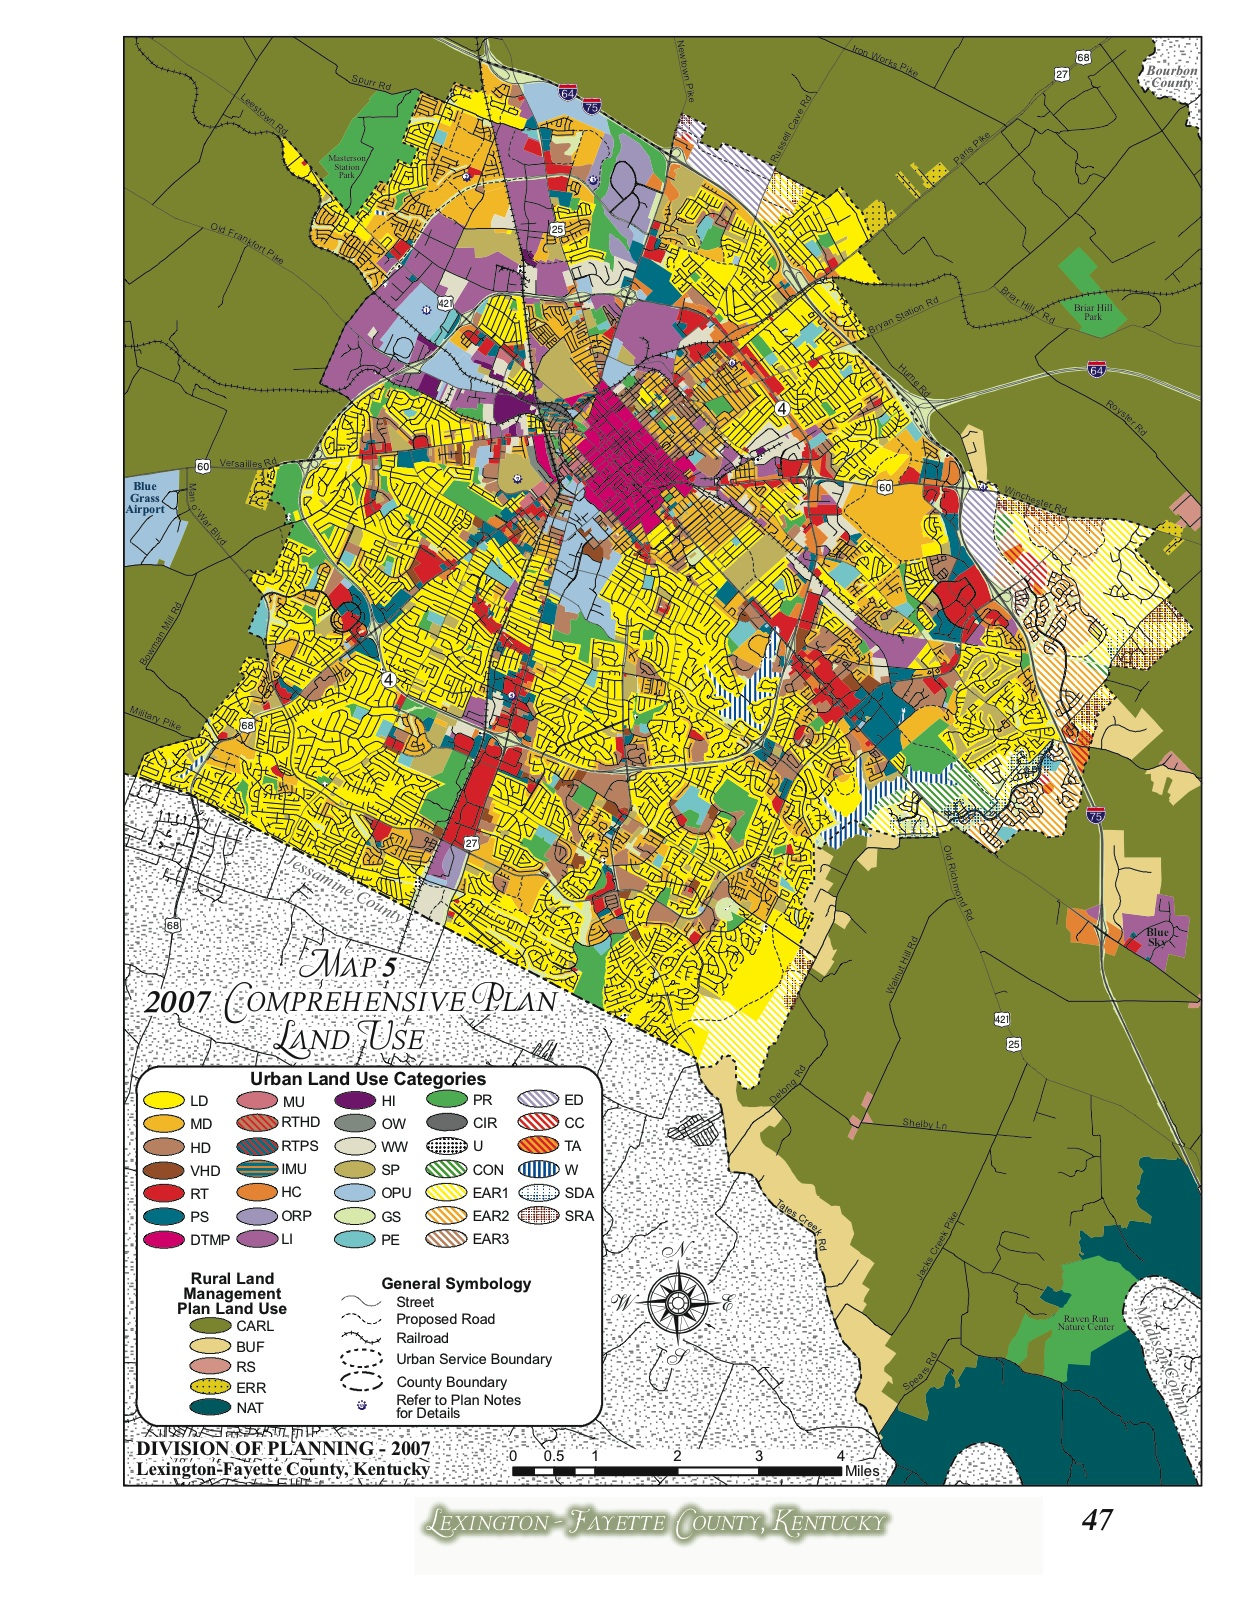 2007 Comprehensive Plan Land Use